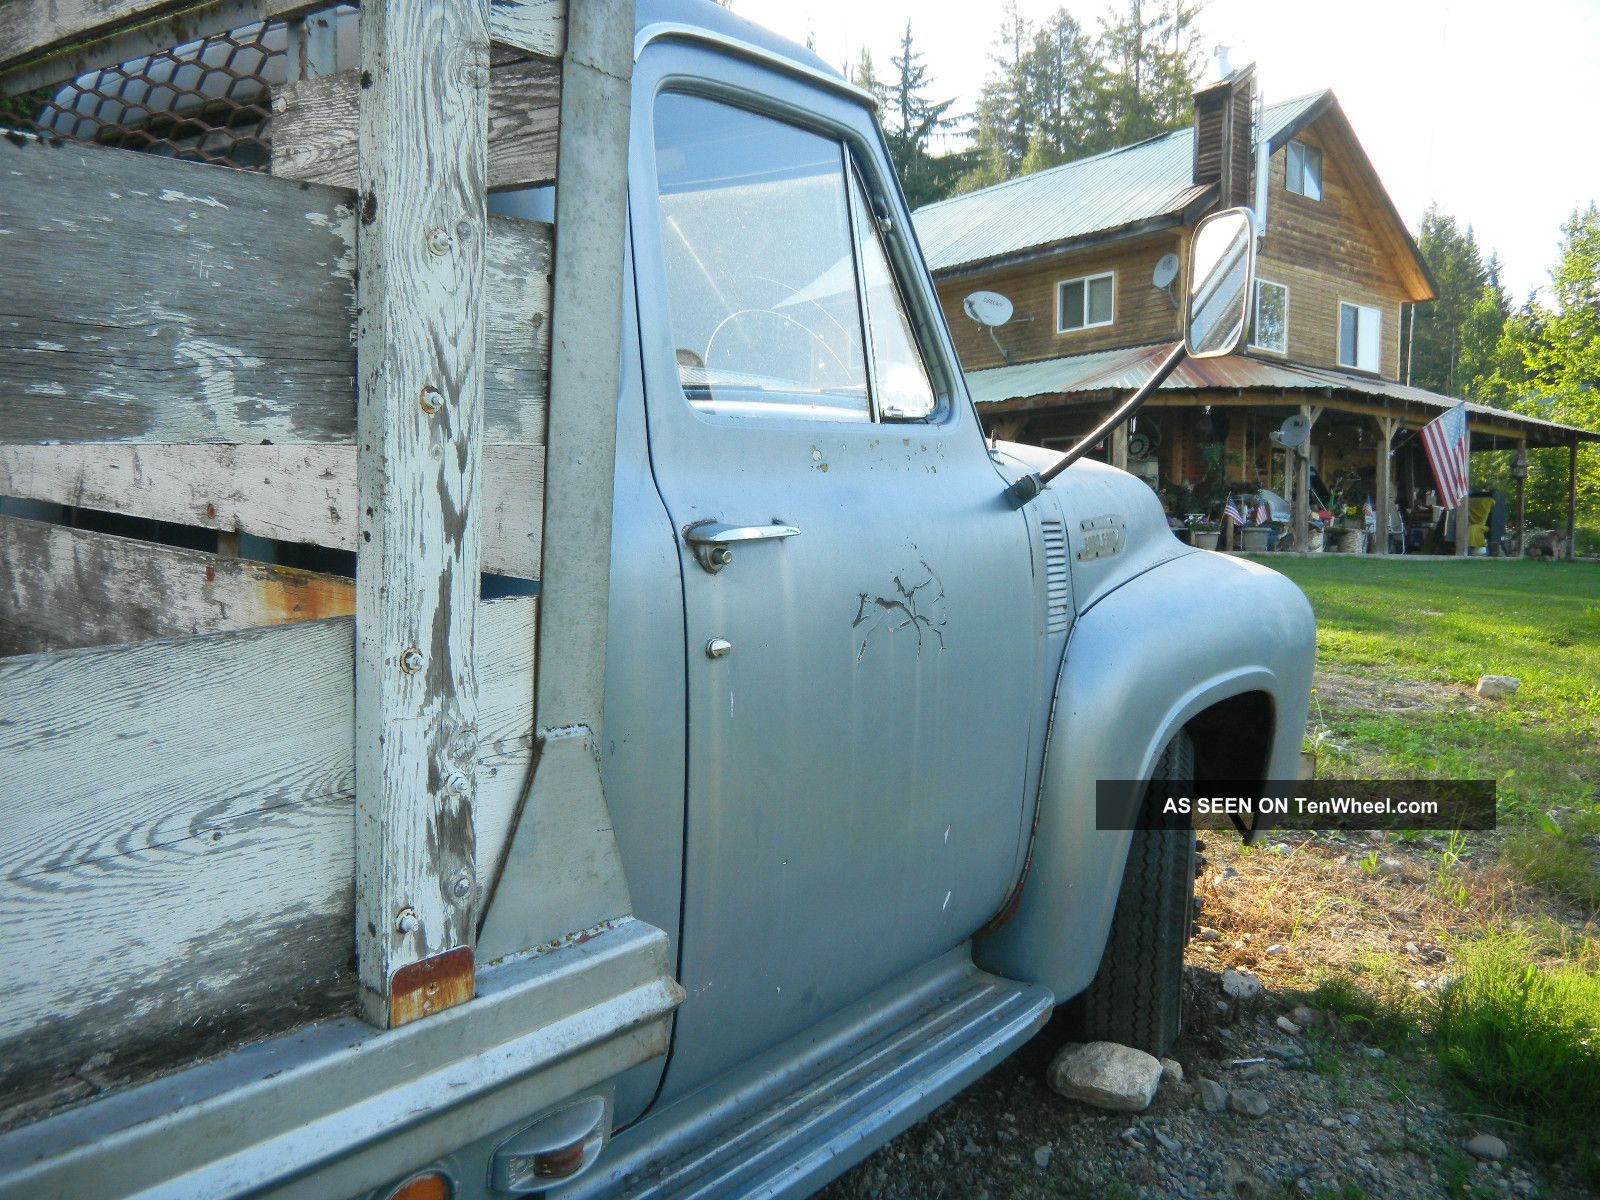 1953 ford v8 4 speed manual 350 1 ton dually short flatbed with 1949 Ford F6 1953 ford v8 4 speed manual 350 1 ton dually short flatbed with racks